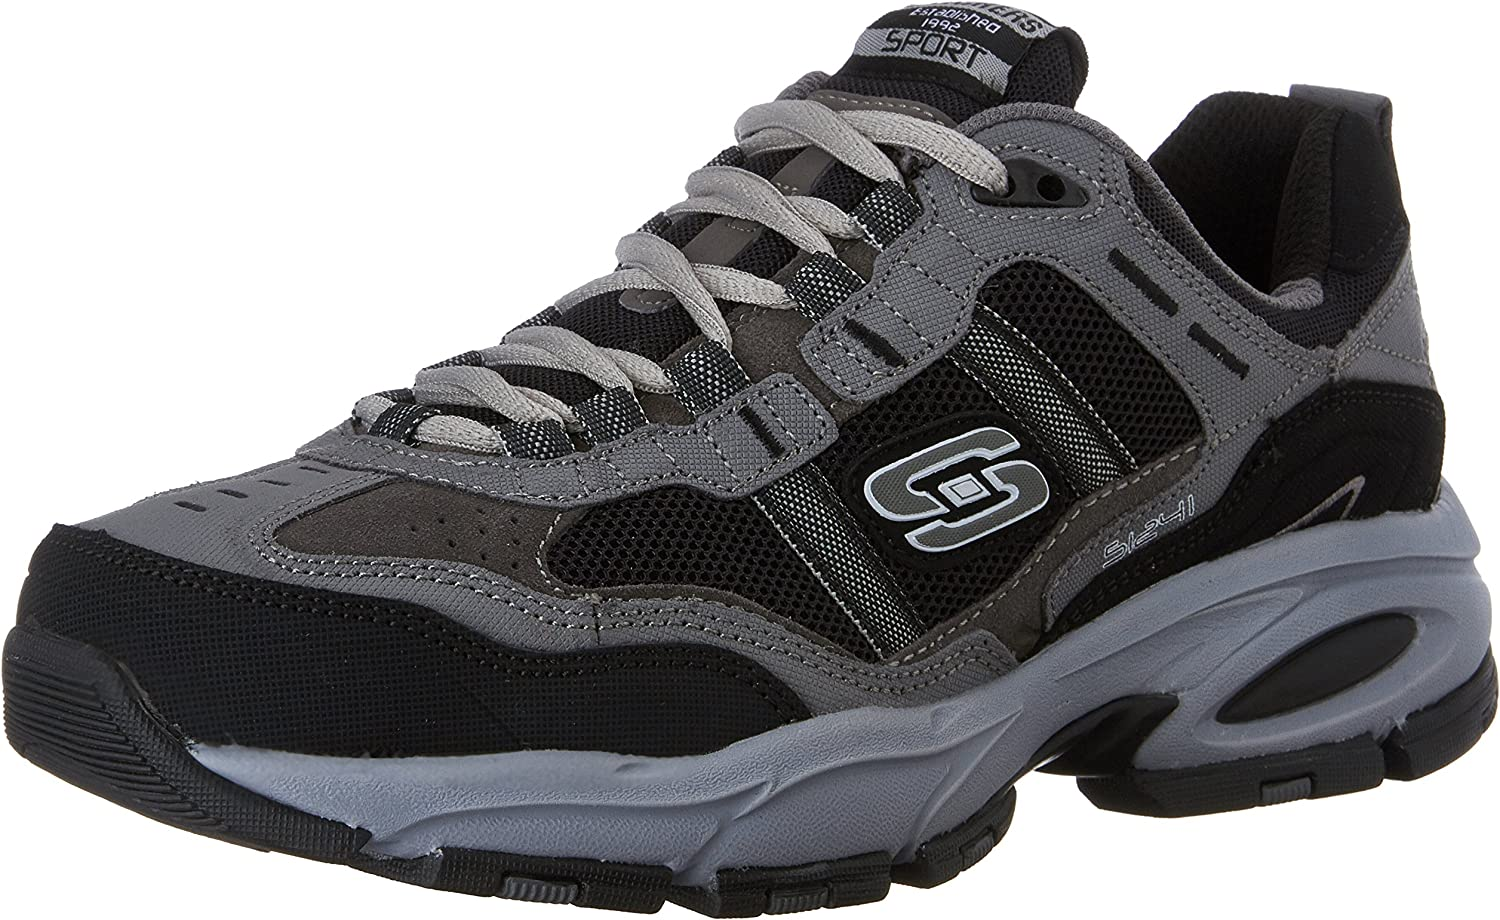 Skechers Men's Vigor 2.0 - Trait-Wide shoes